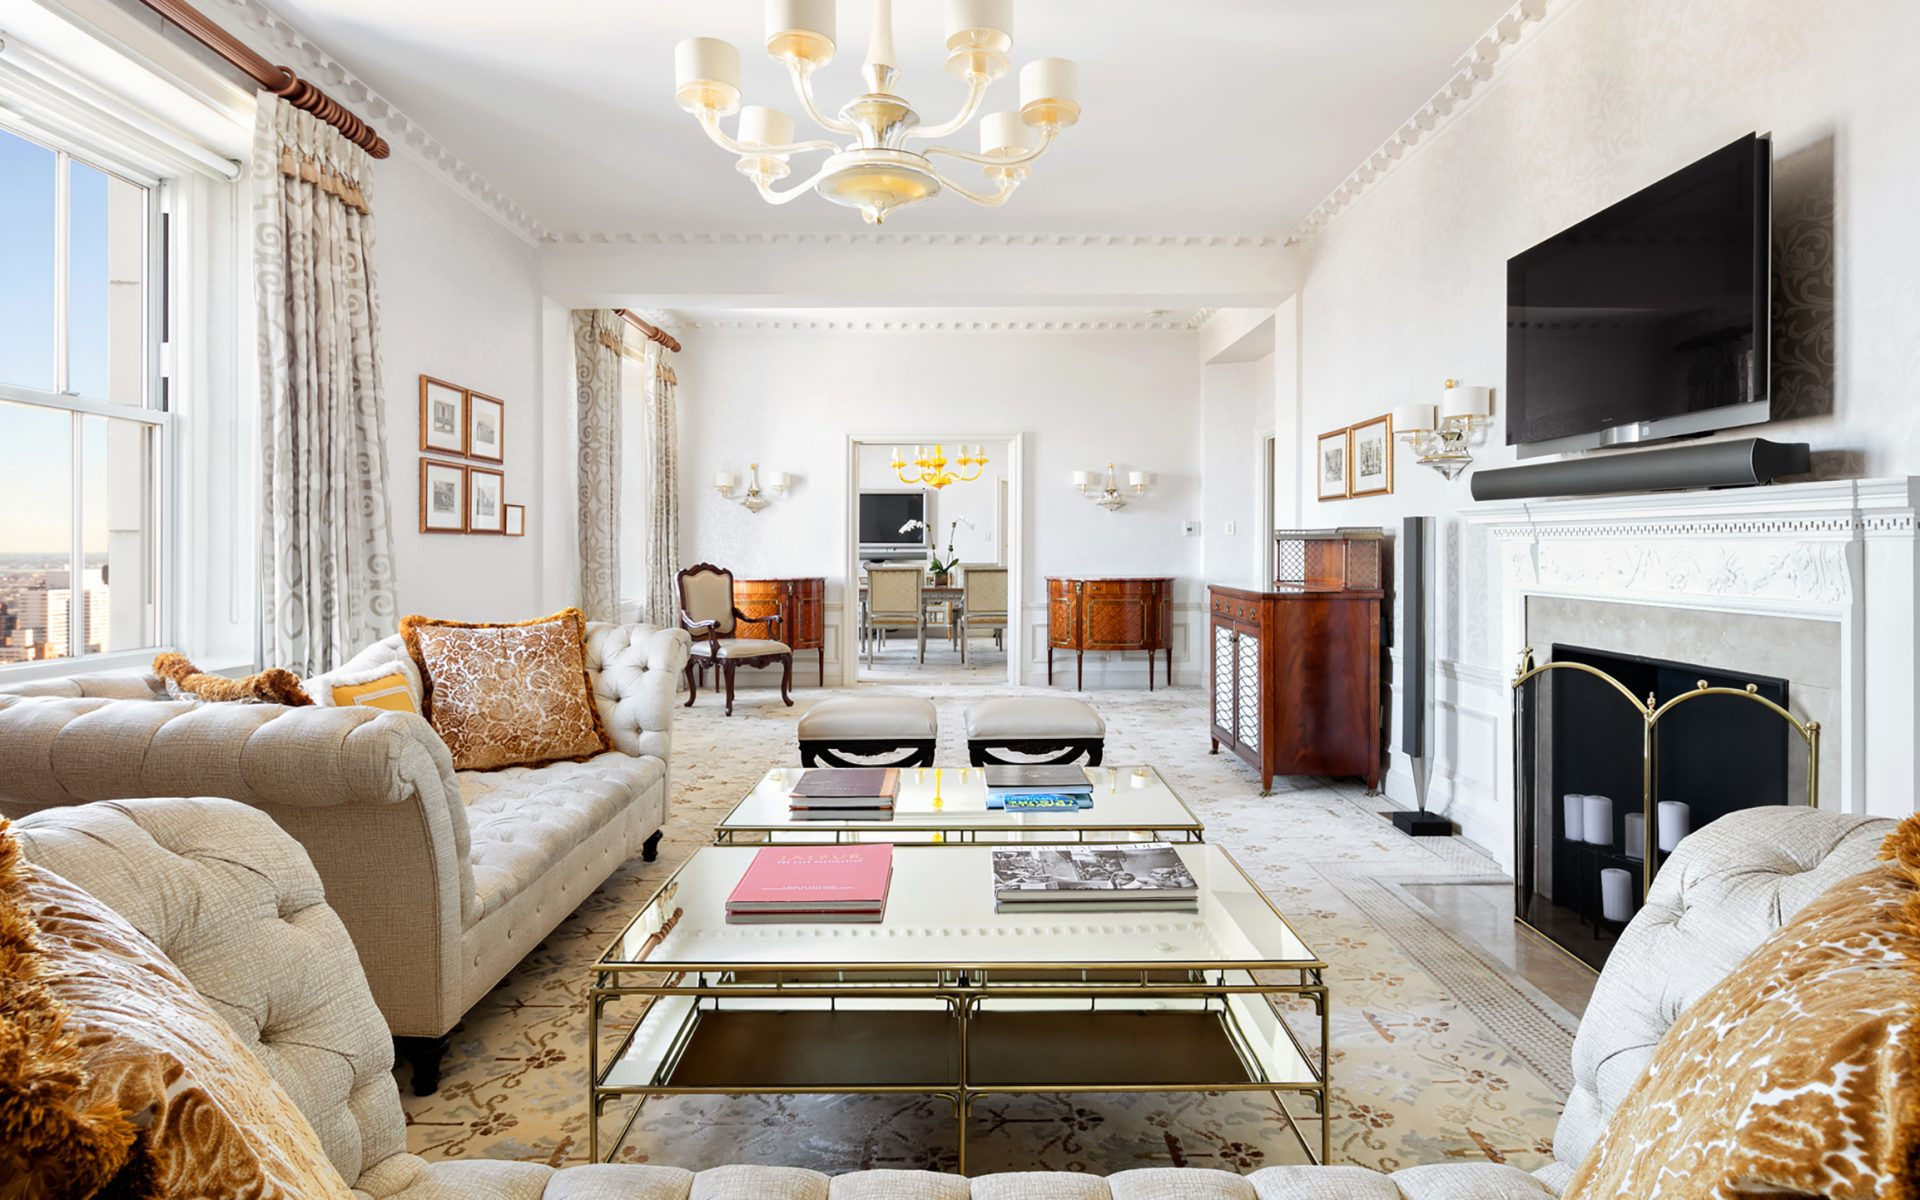 9 Of The Most Expensive Hotel Suites In New York City Galerie within 14 Some of the Coolest Tricks of How to Upgrade Living Room Sets Nyc